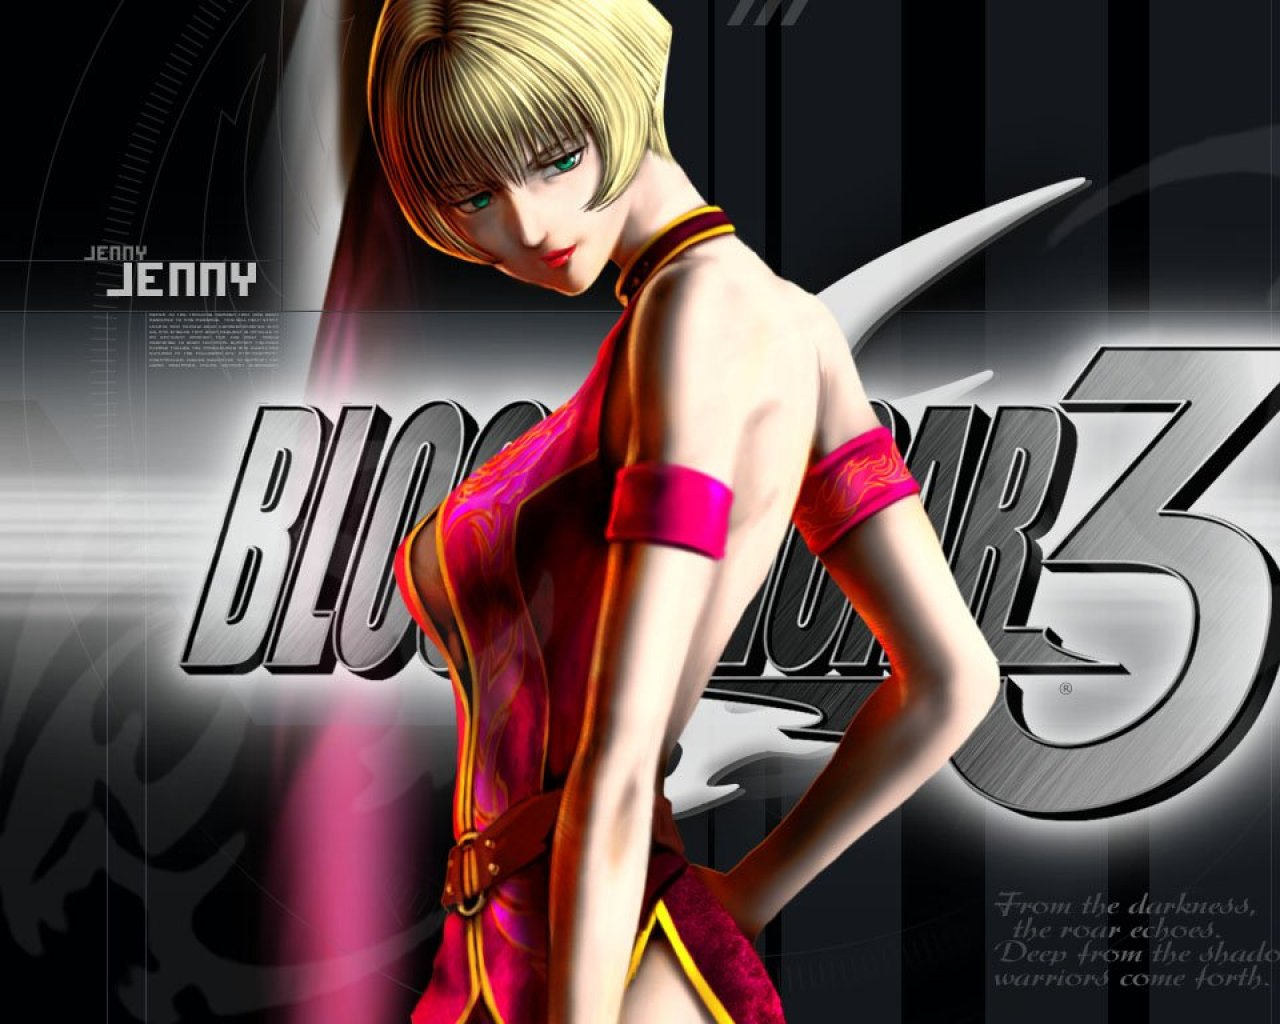 Bloody roar jenny fucked porn video download adult movie